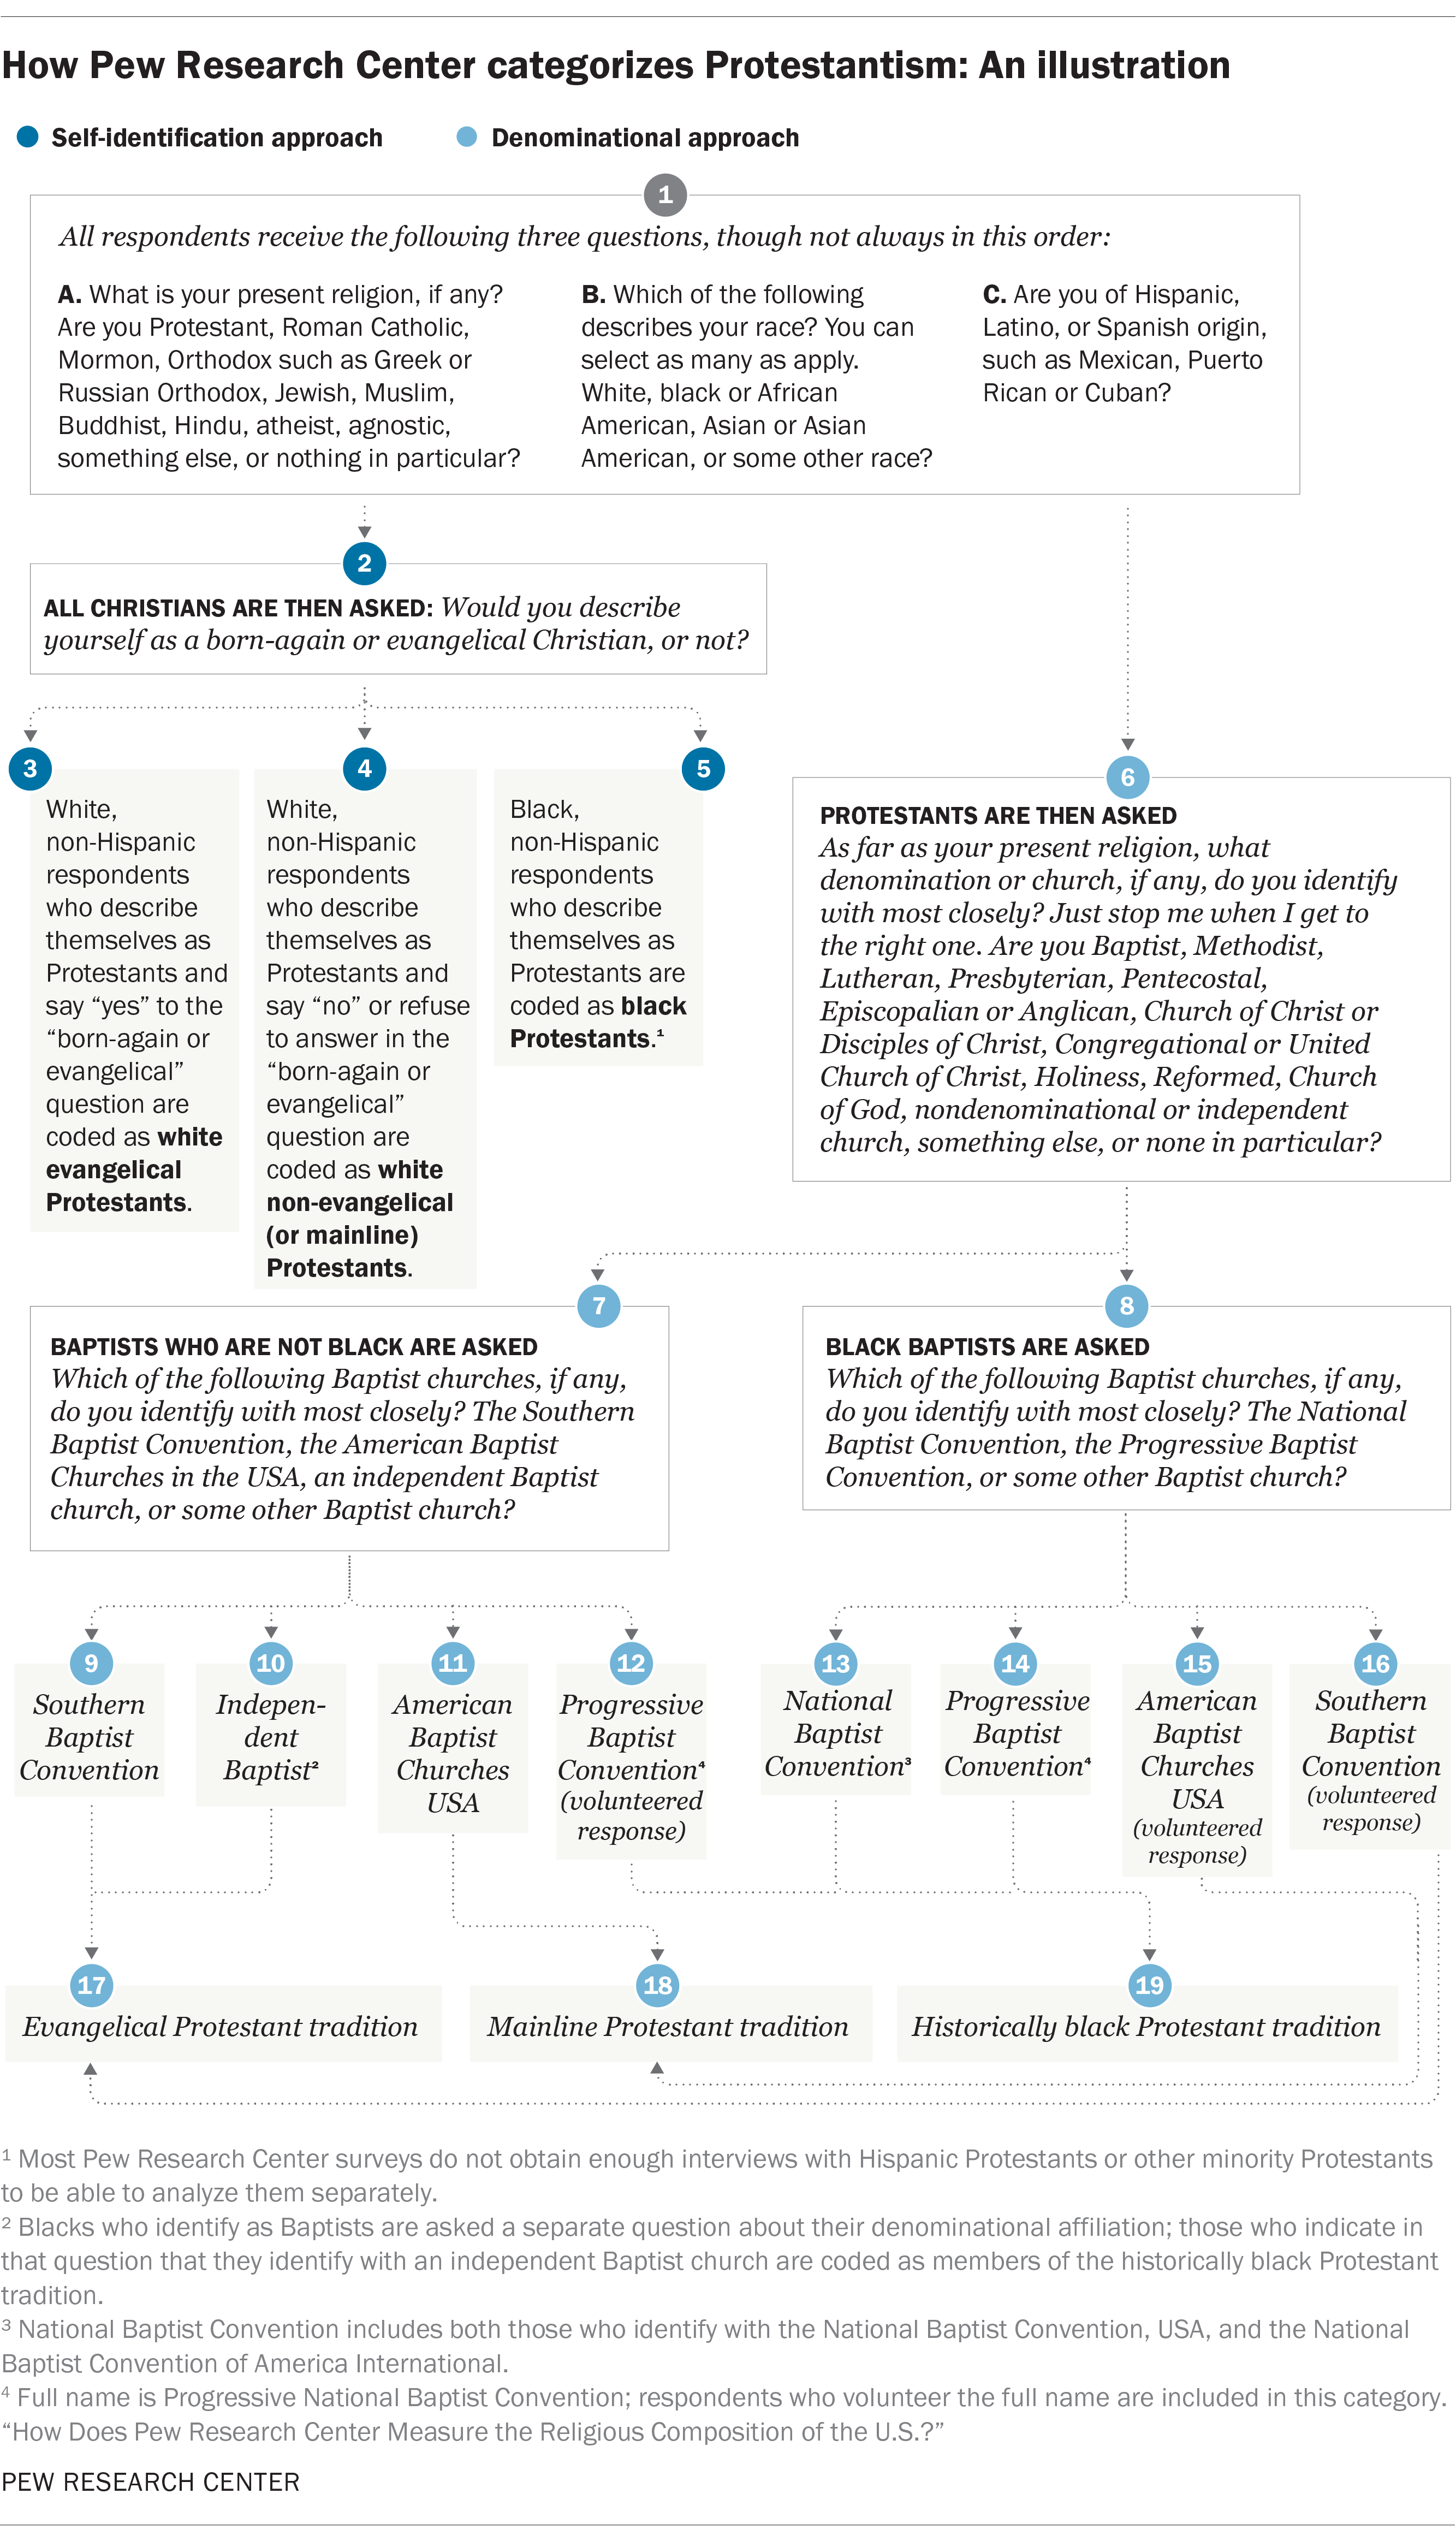 How Pew Research Center categorizes Protestantism: An illustration